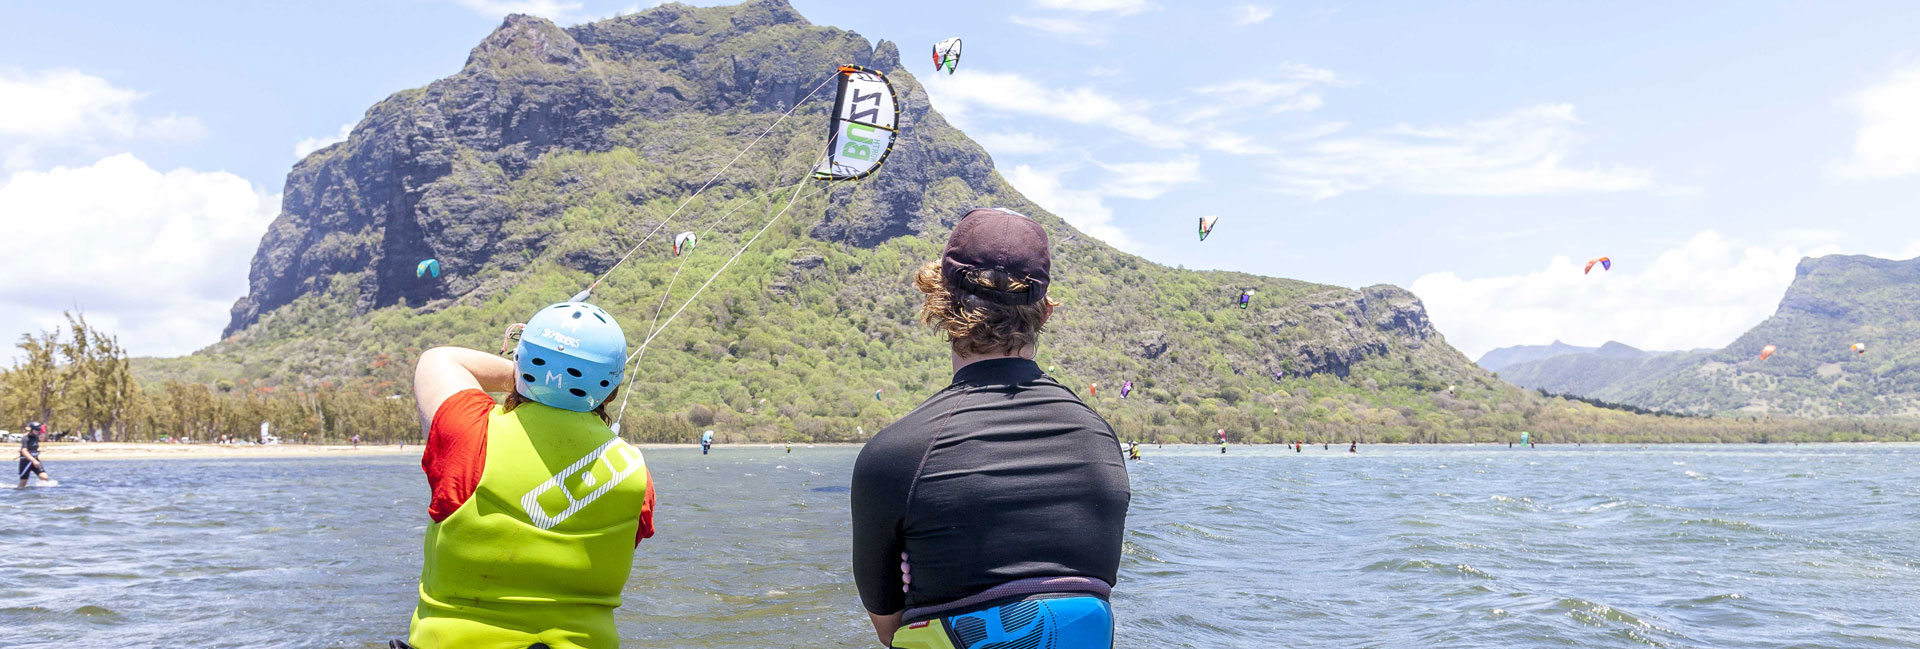 teaching-le-morne-kite-lagoon